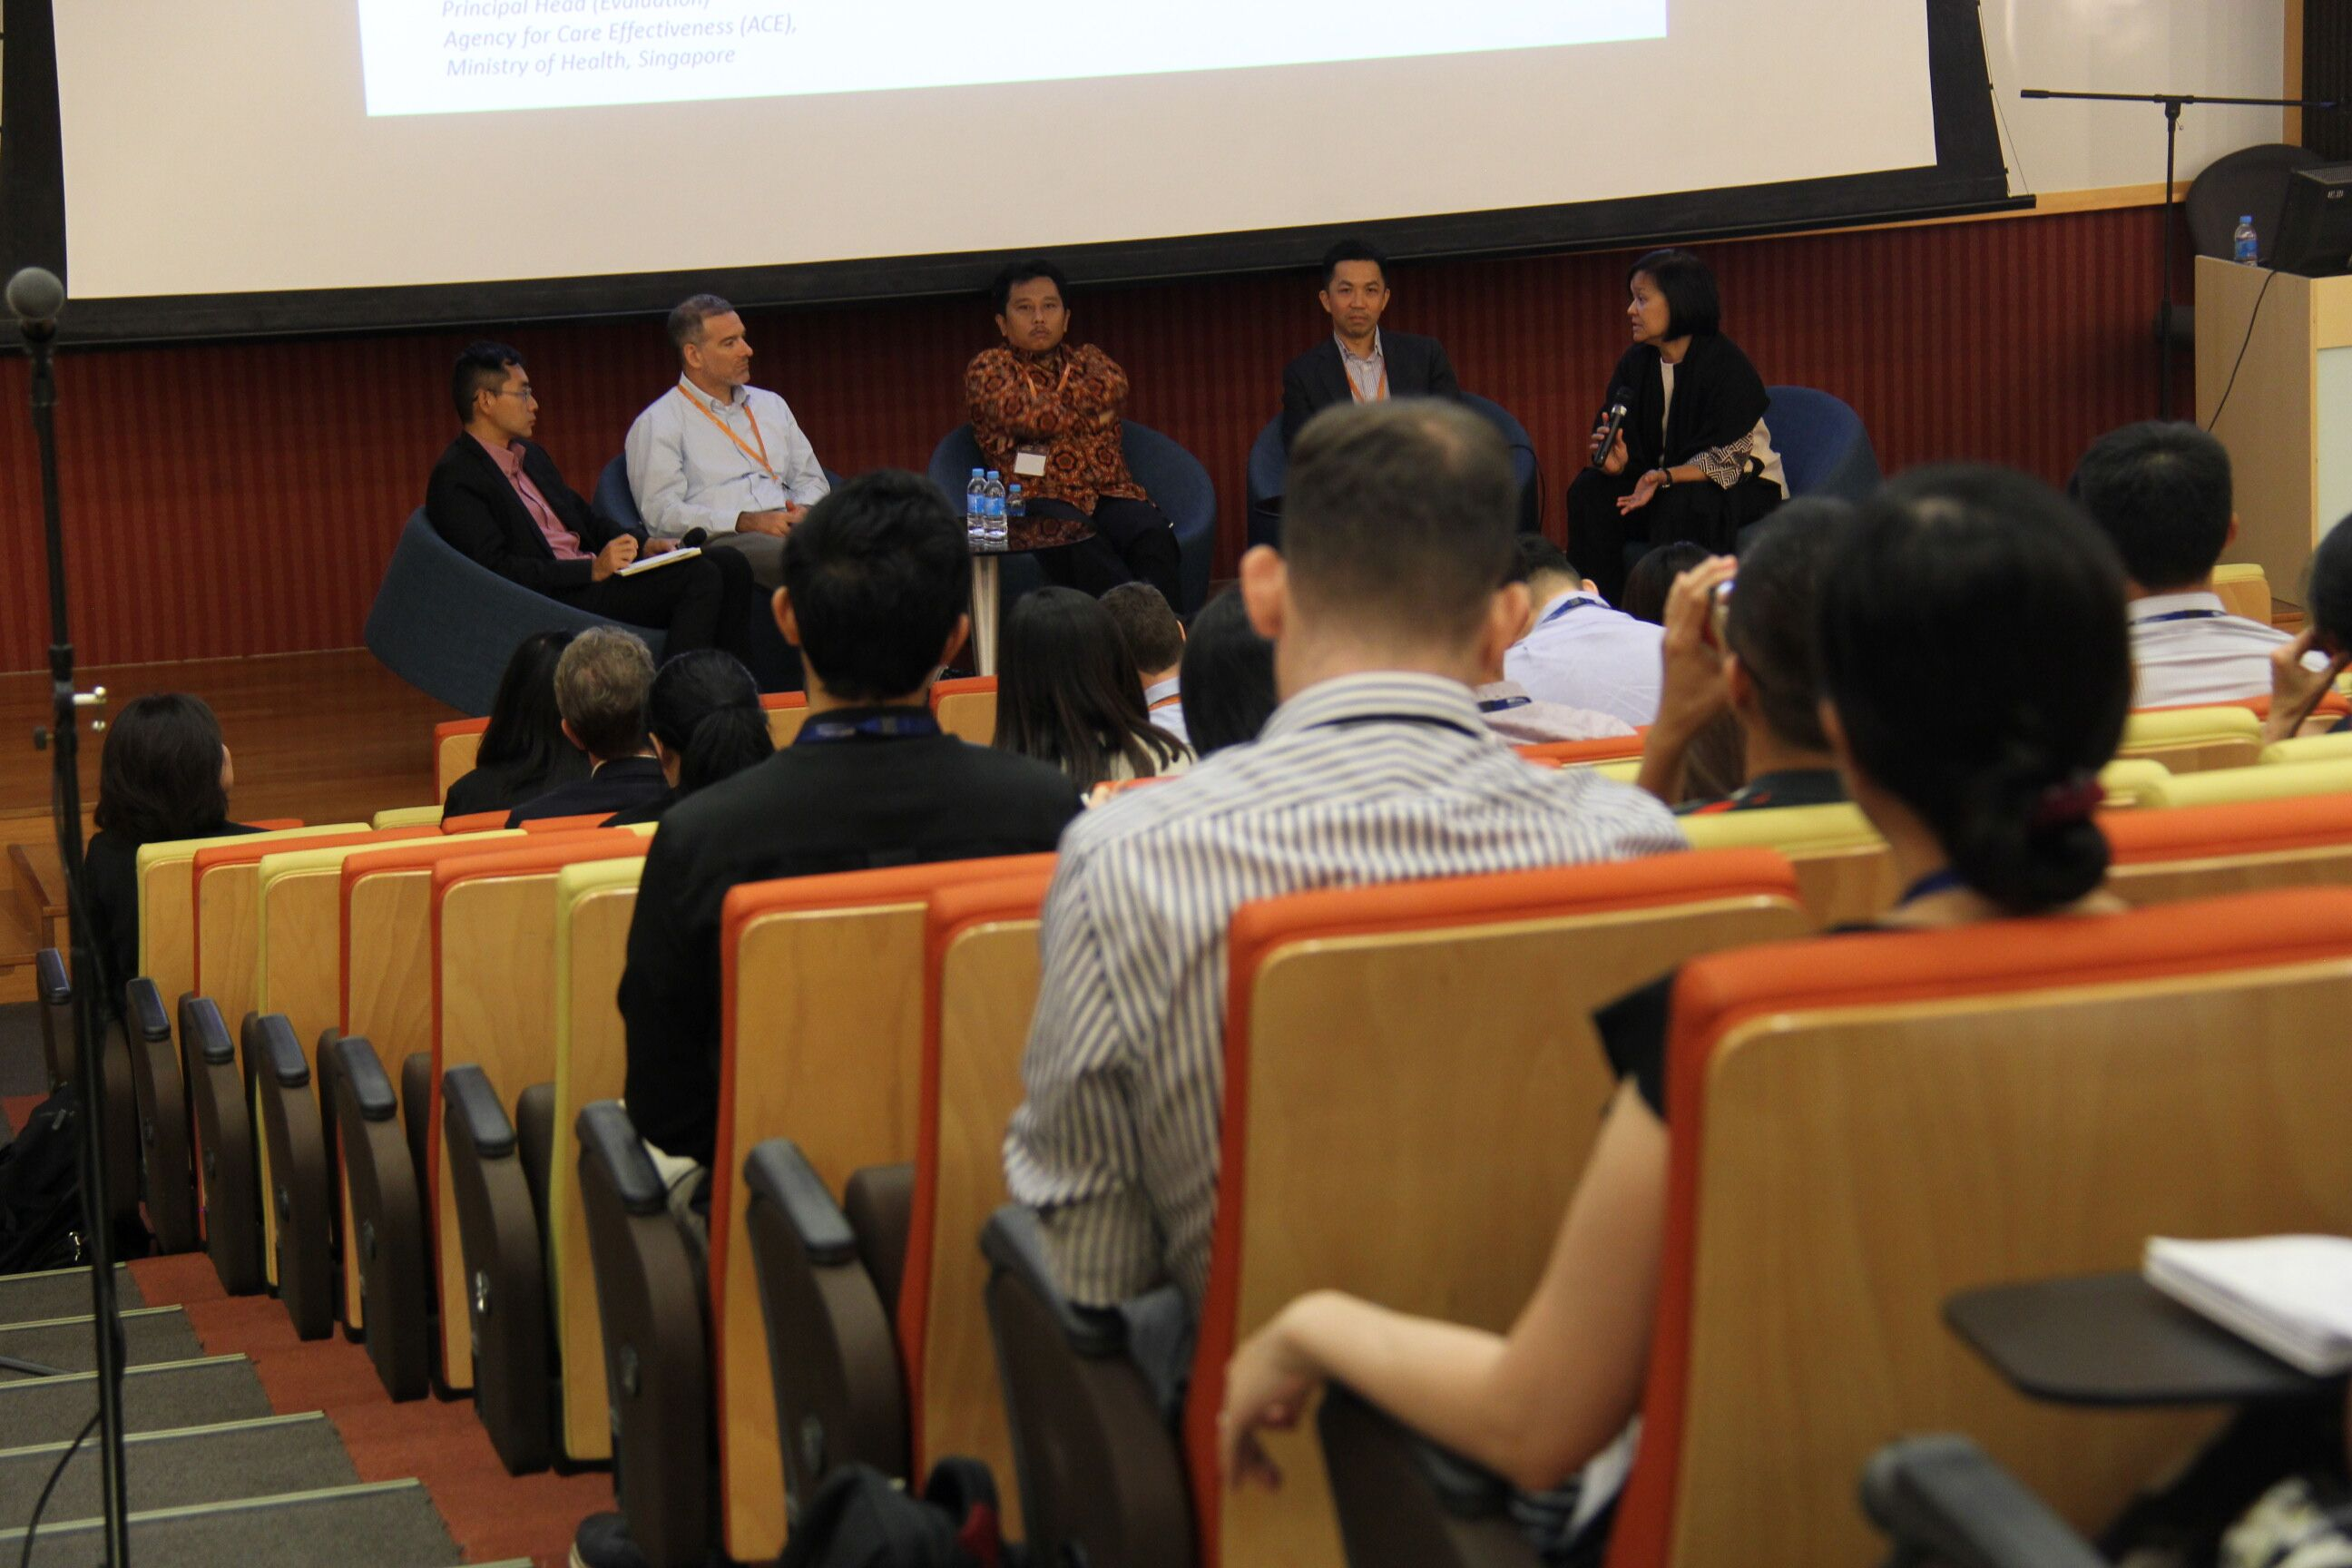 Guest Blog: Reflections from the Training in Singapore and Updates on Philippines HTA